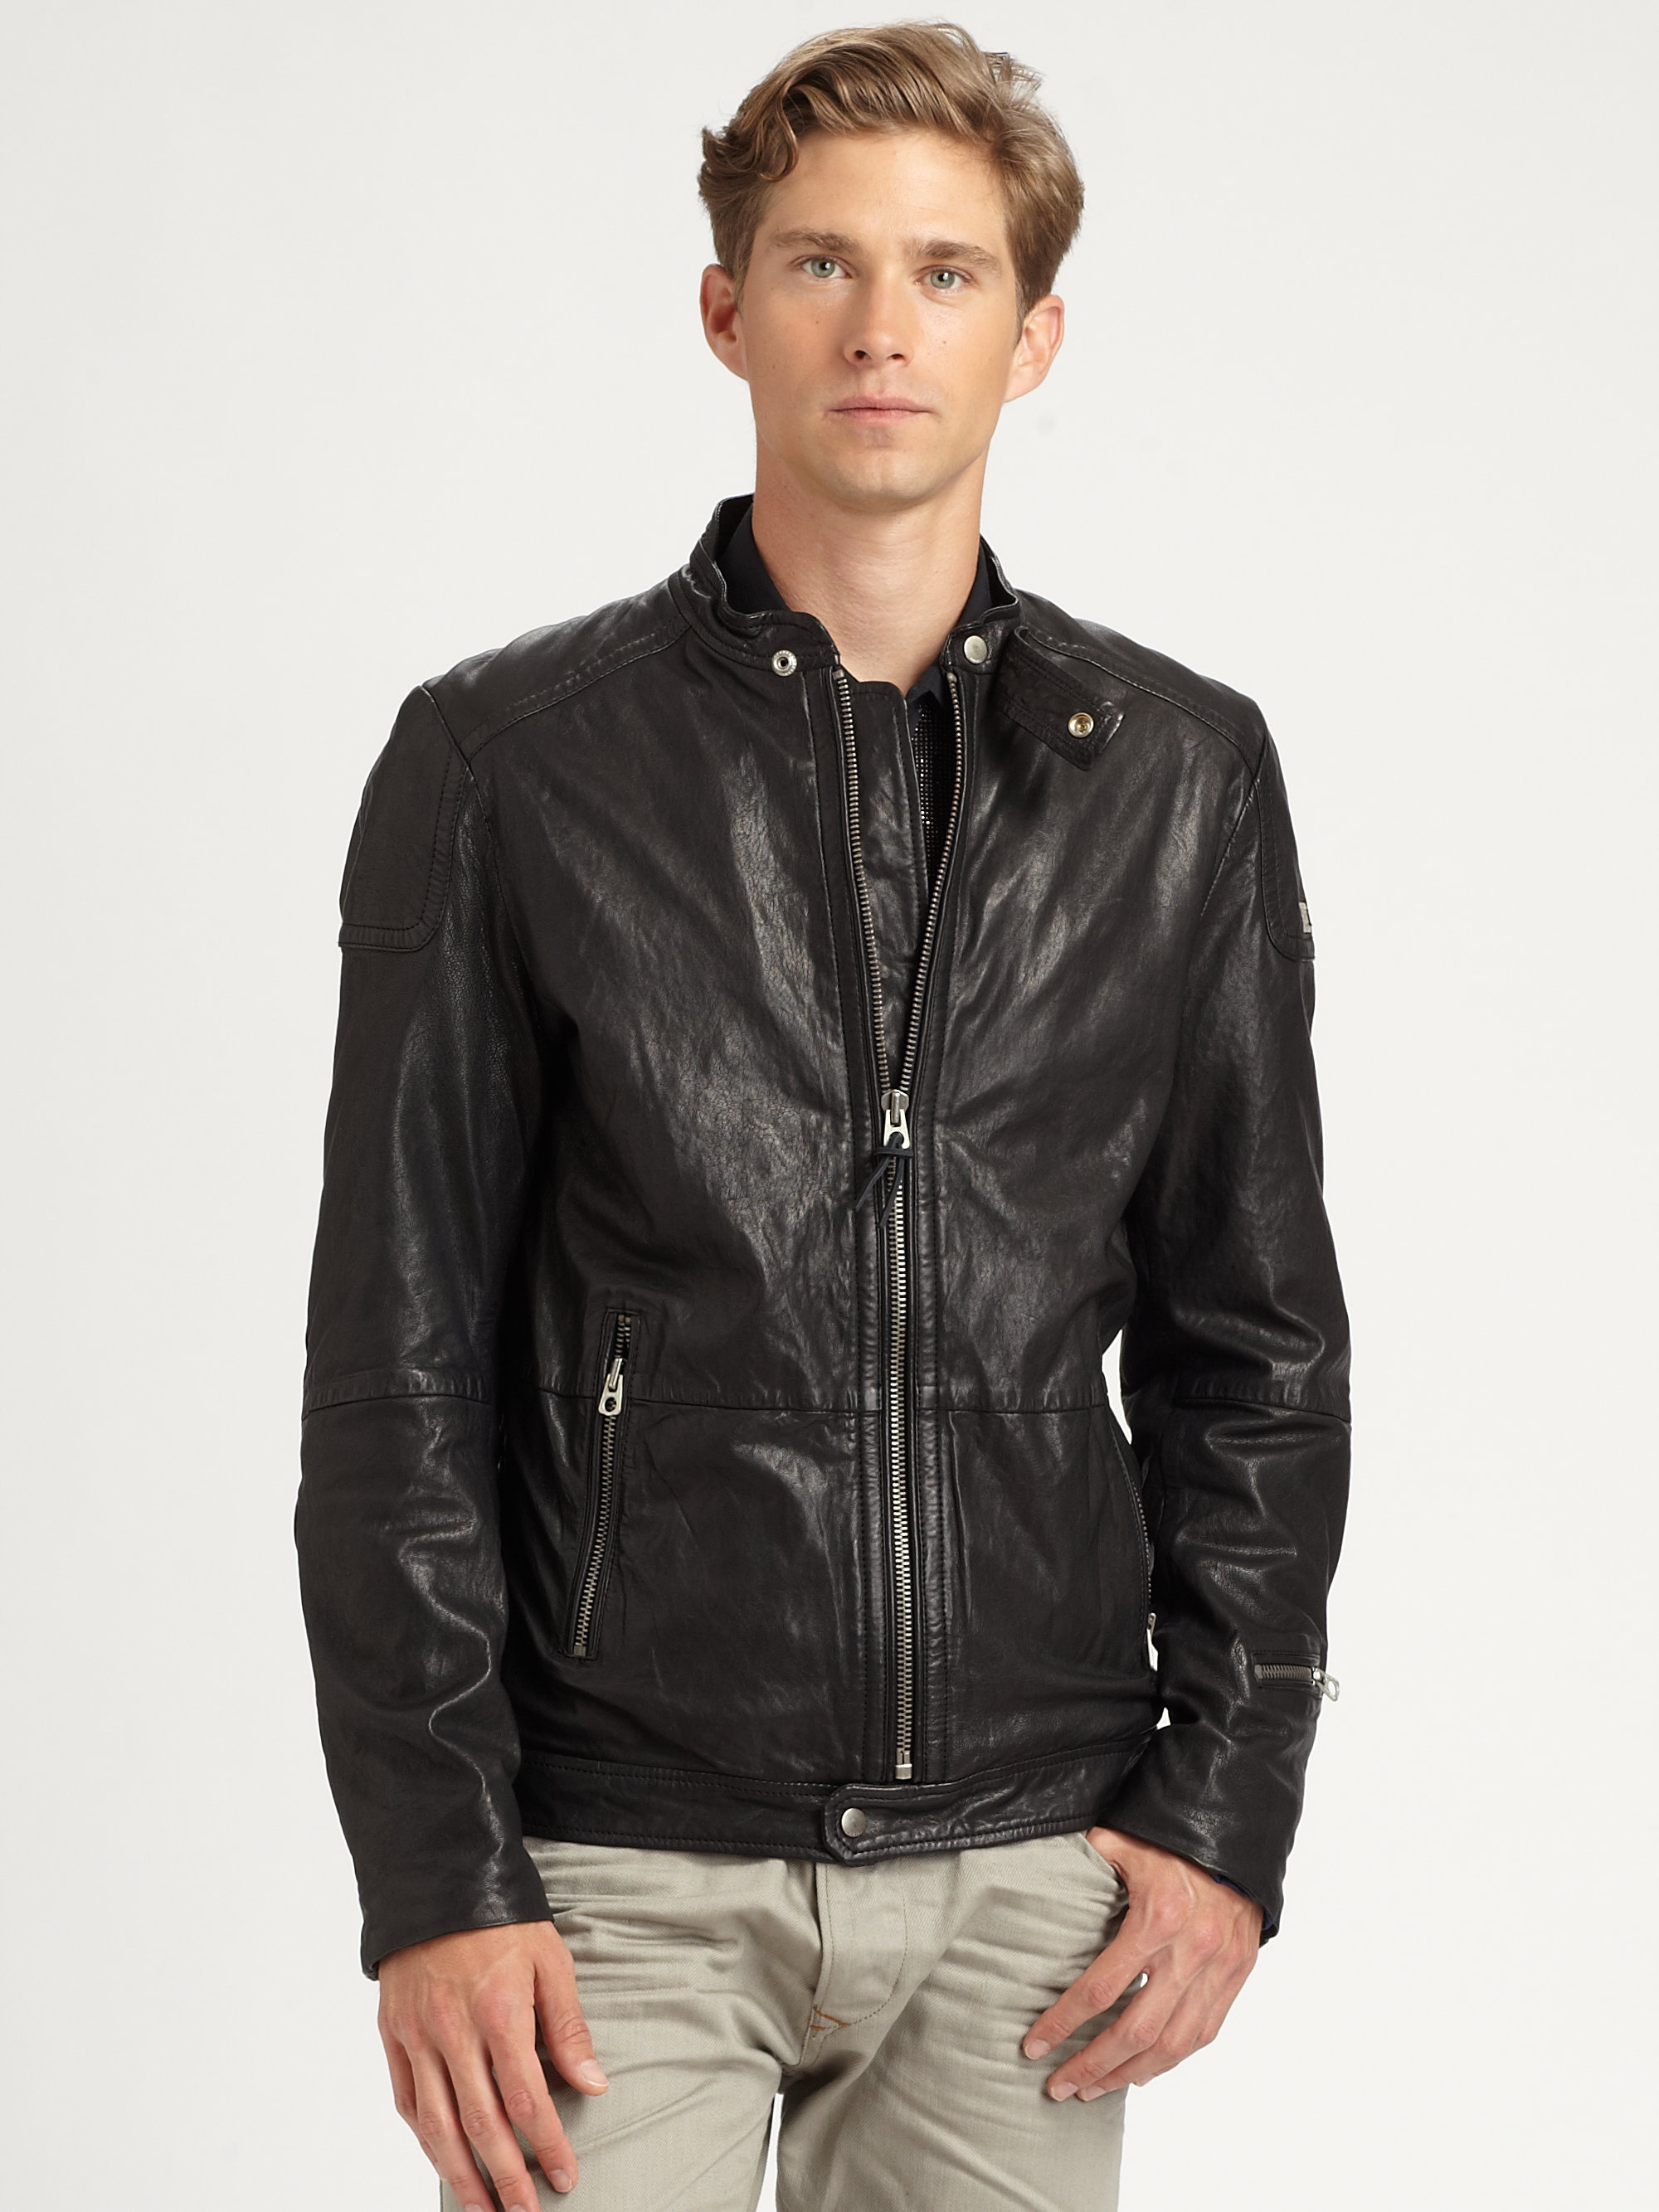 Diesel Leather Jacket Jacketin